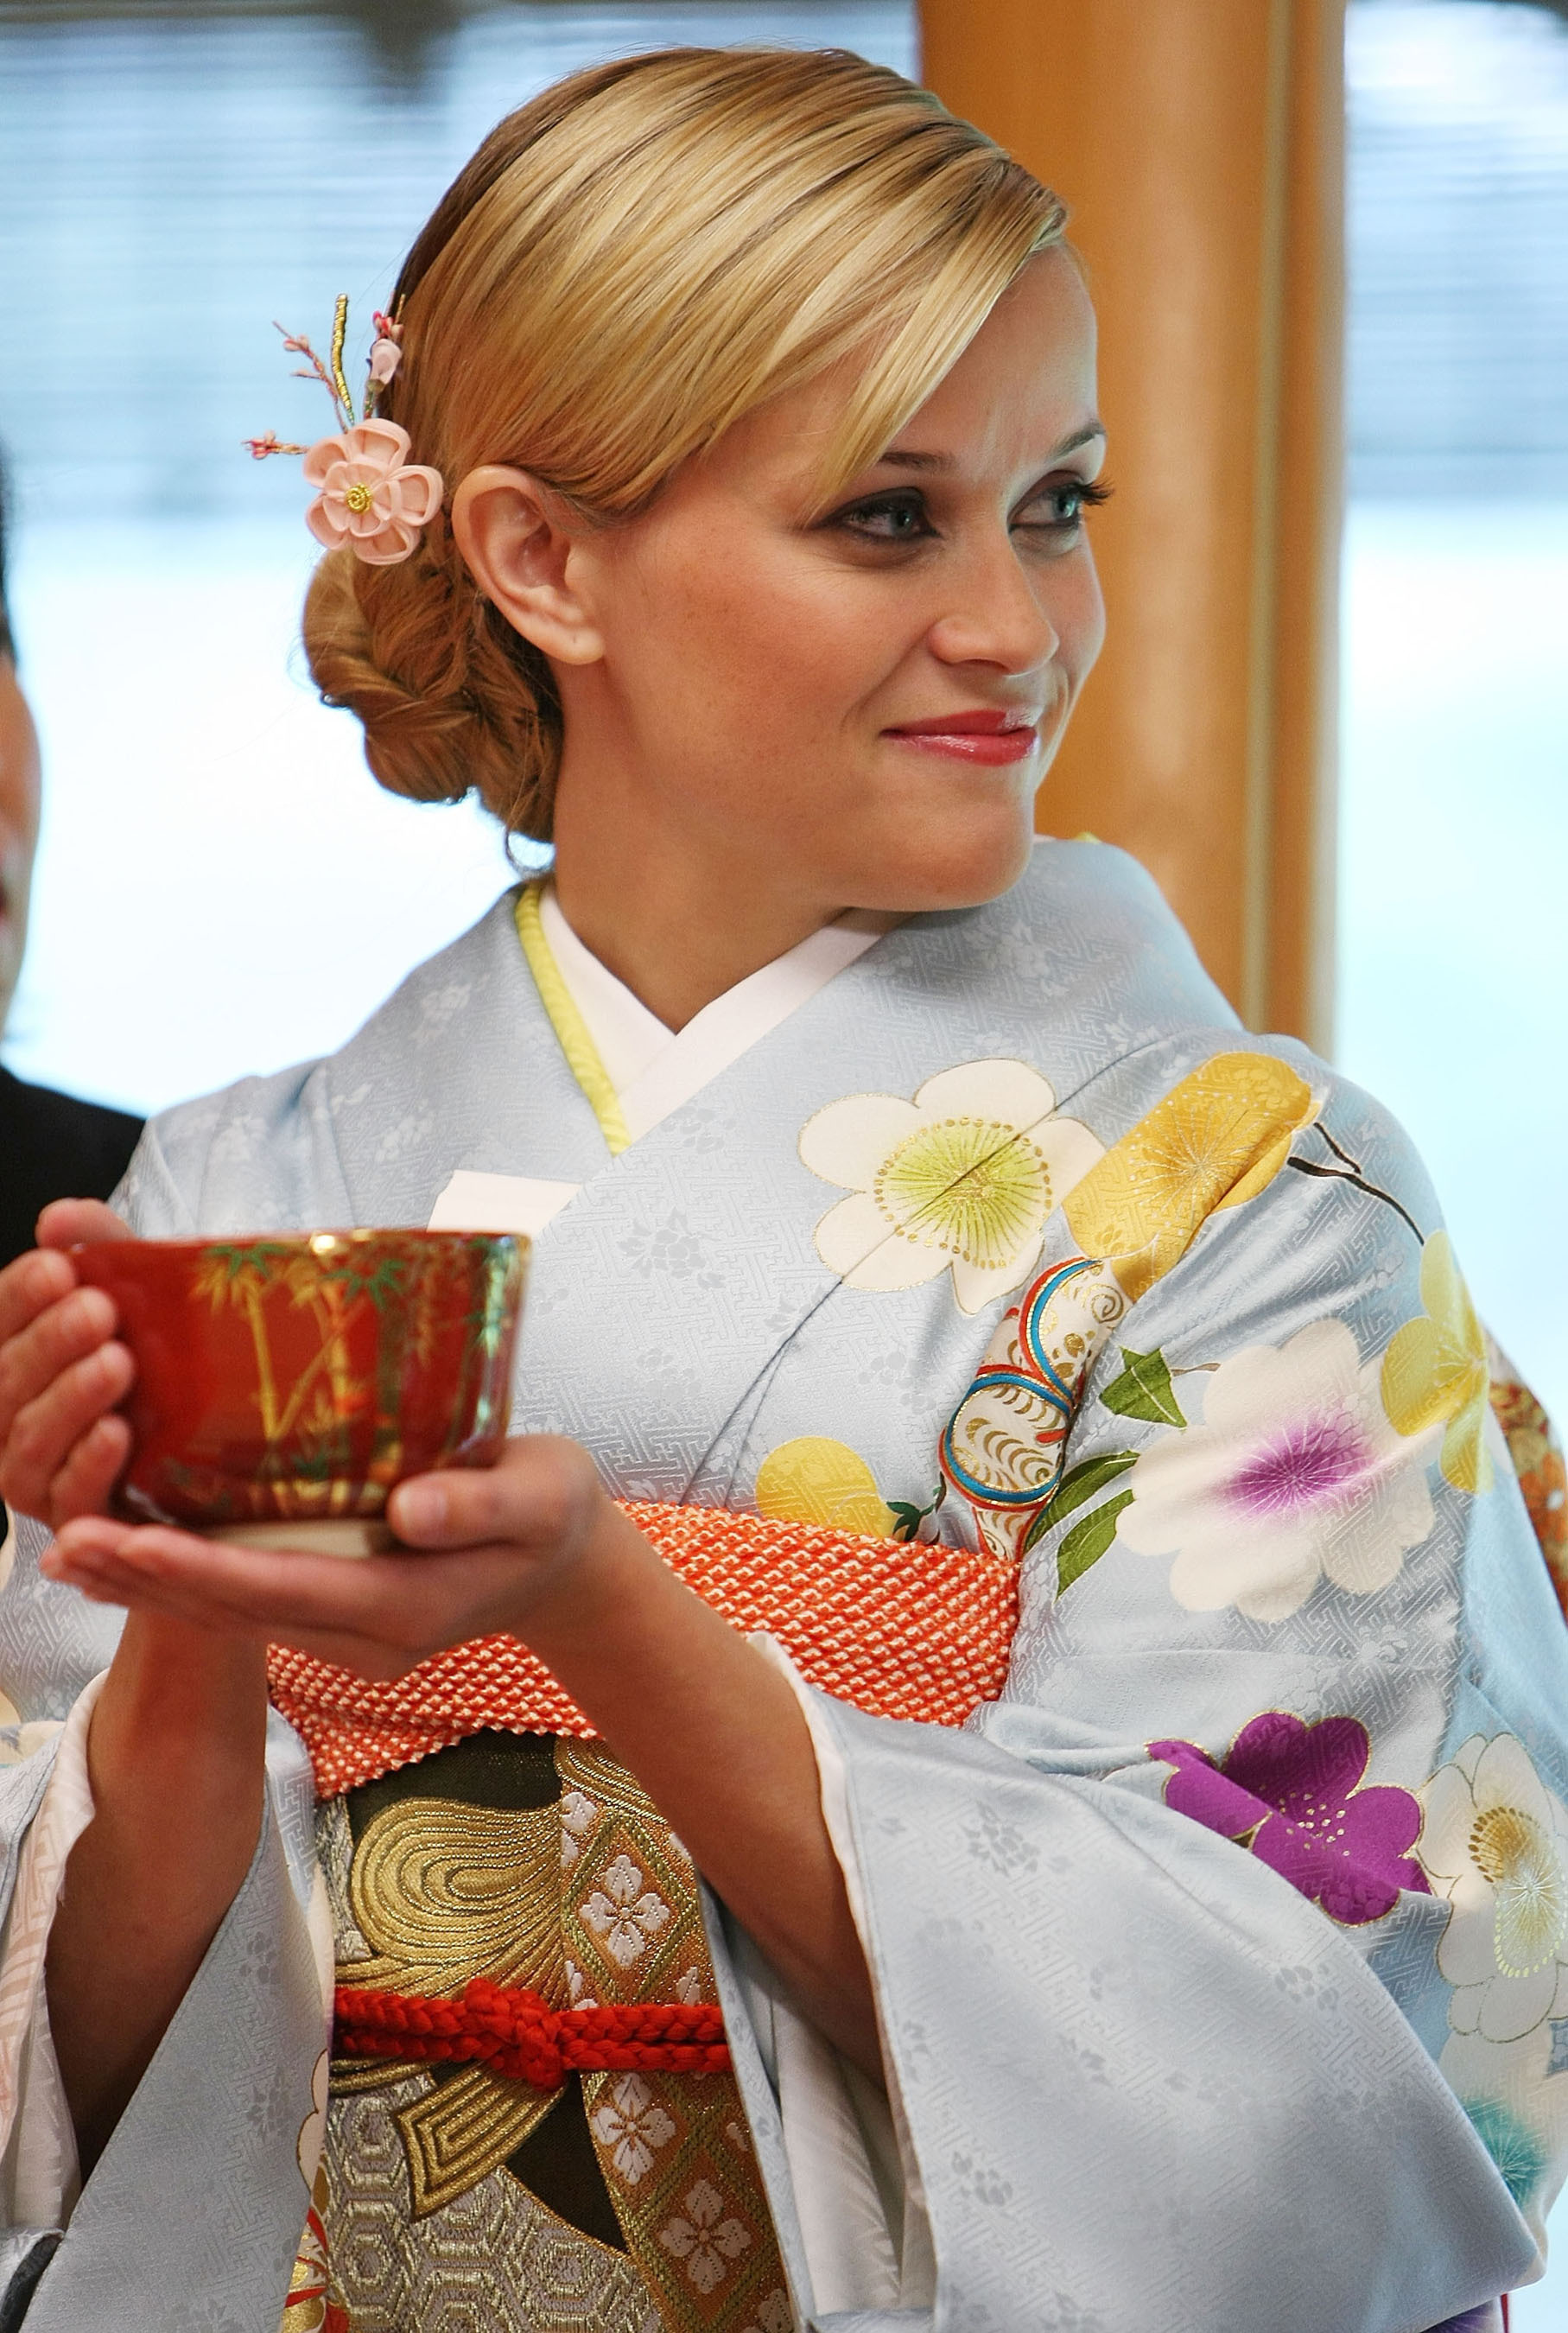 http://ch.ai/wp-content/uploads/2008/10/reese-witherspoon-japanese-tea-ceremony-avon-global-ambassa2.jpg